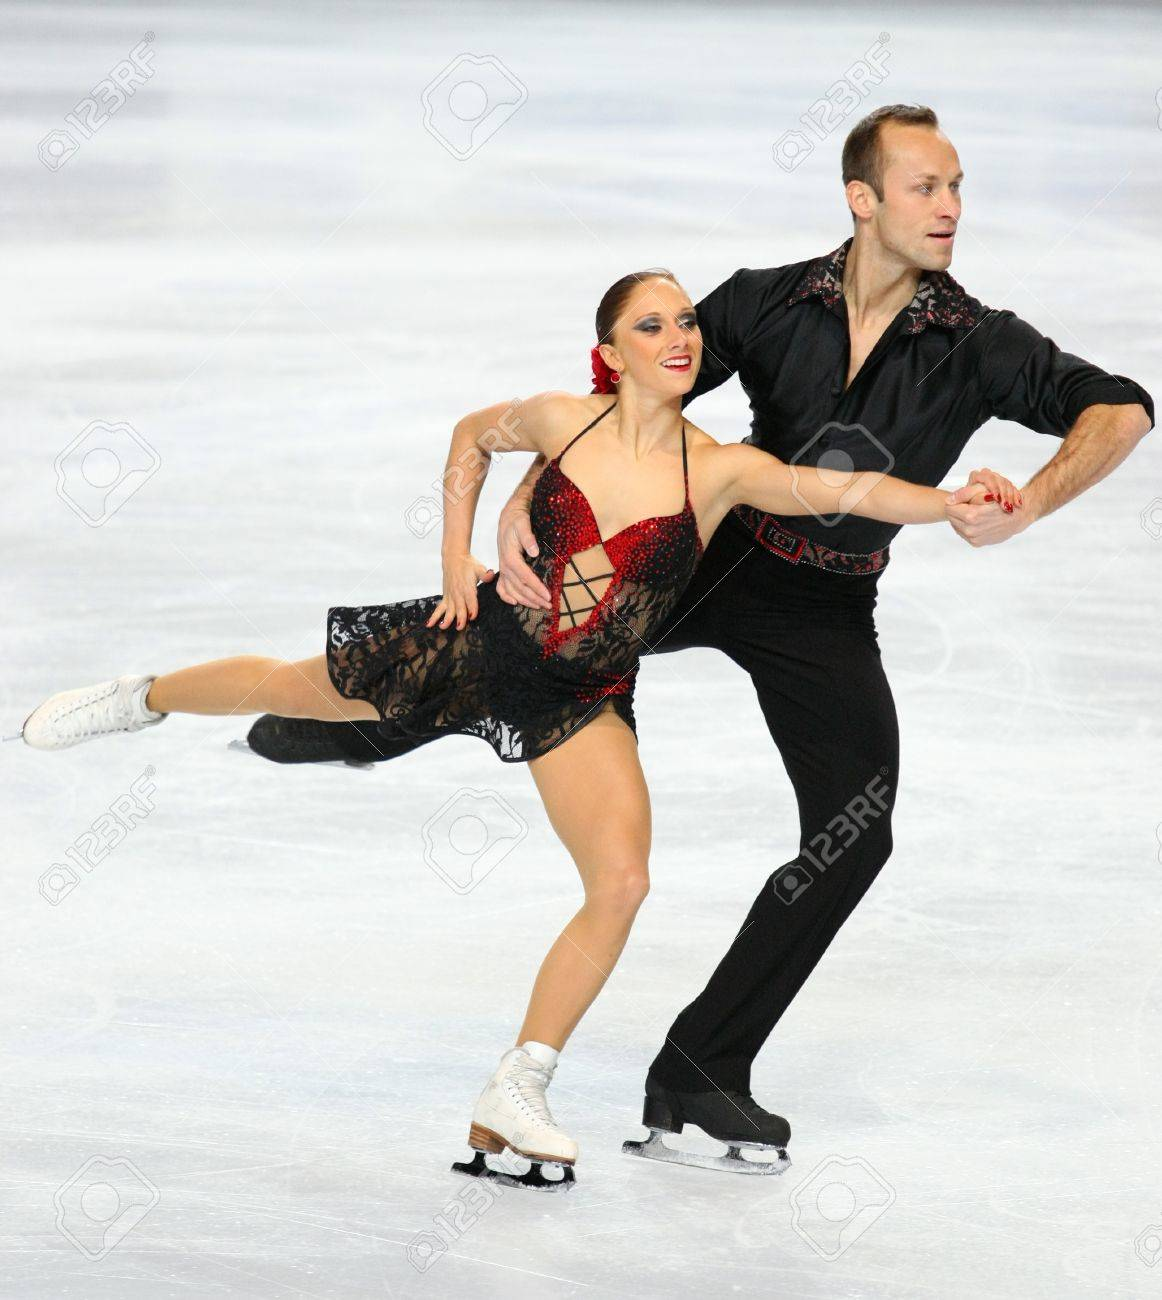 PARIS - NOVEMBER 26: Maylin HAUSCH and Daniel WENDE of Germany perform during pairs short skating event at Eric Bompard Trophy on November 26, 2010 at Palais-Omnisports de Bercy, Paris, France. Stock Photo - 8335483